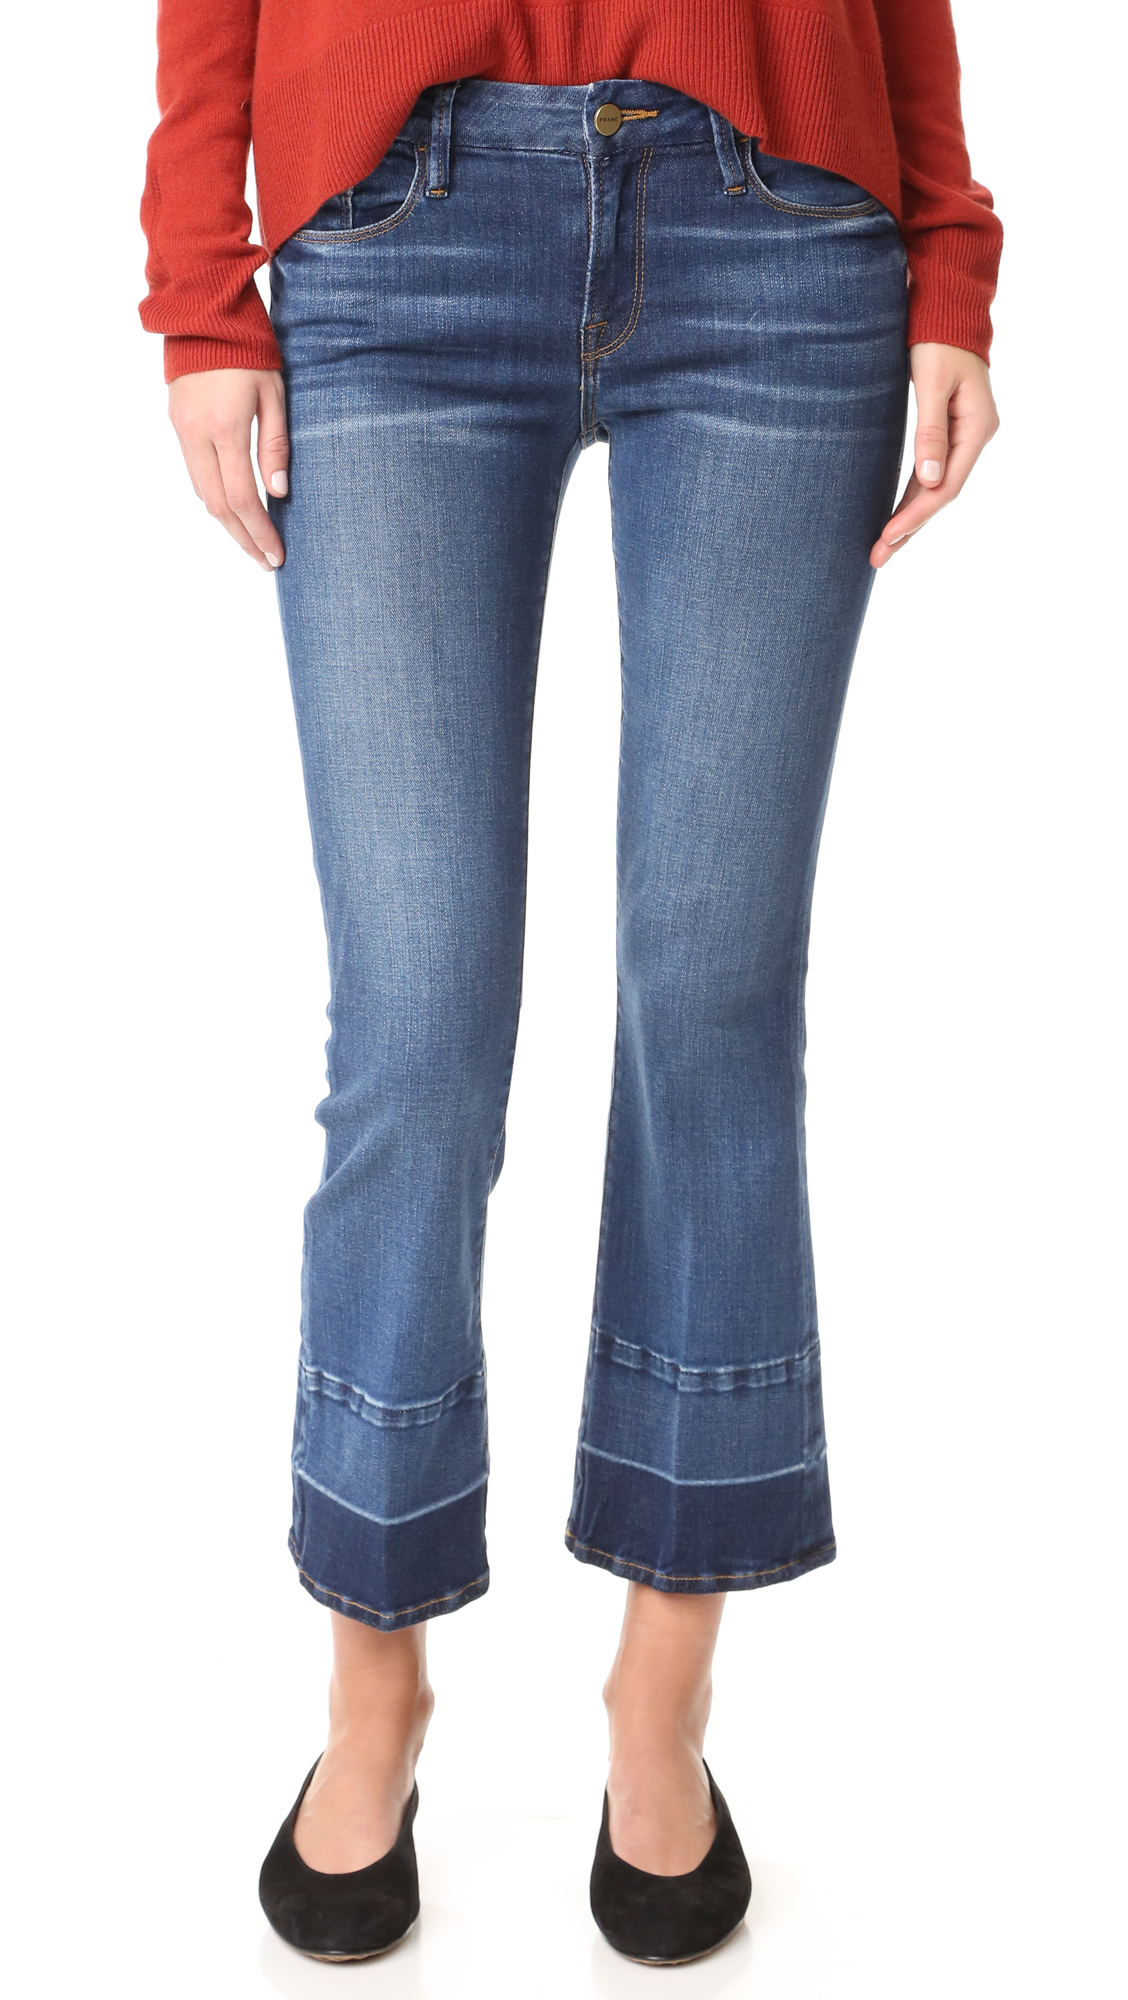 Soft stretch denim lends a curve conforming fit to these ankle length FRAME jeans. Light whisking lends worn appeal. 5 pocket styling. Button closure and zip fly. Fabric: Strech denim. 92.5% cotton/6% polyester/1.5% elastane. Wash cold. Made in